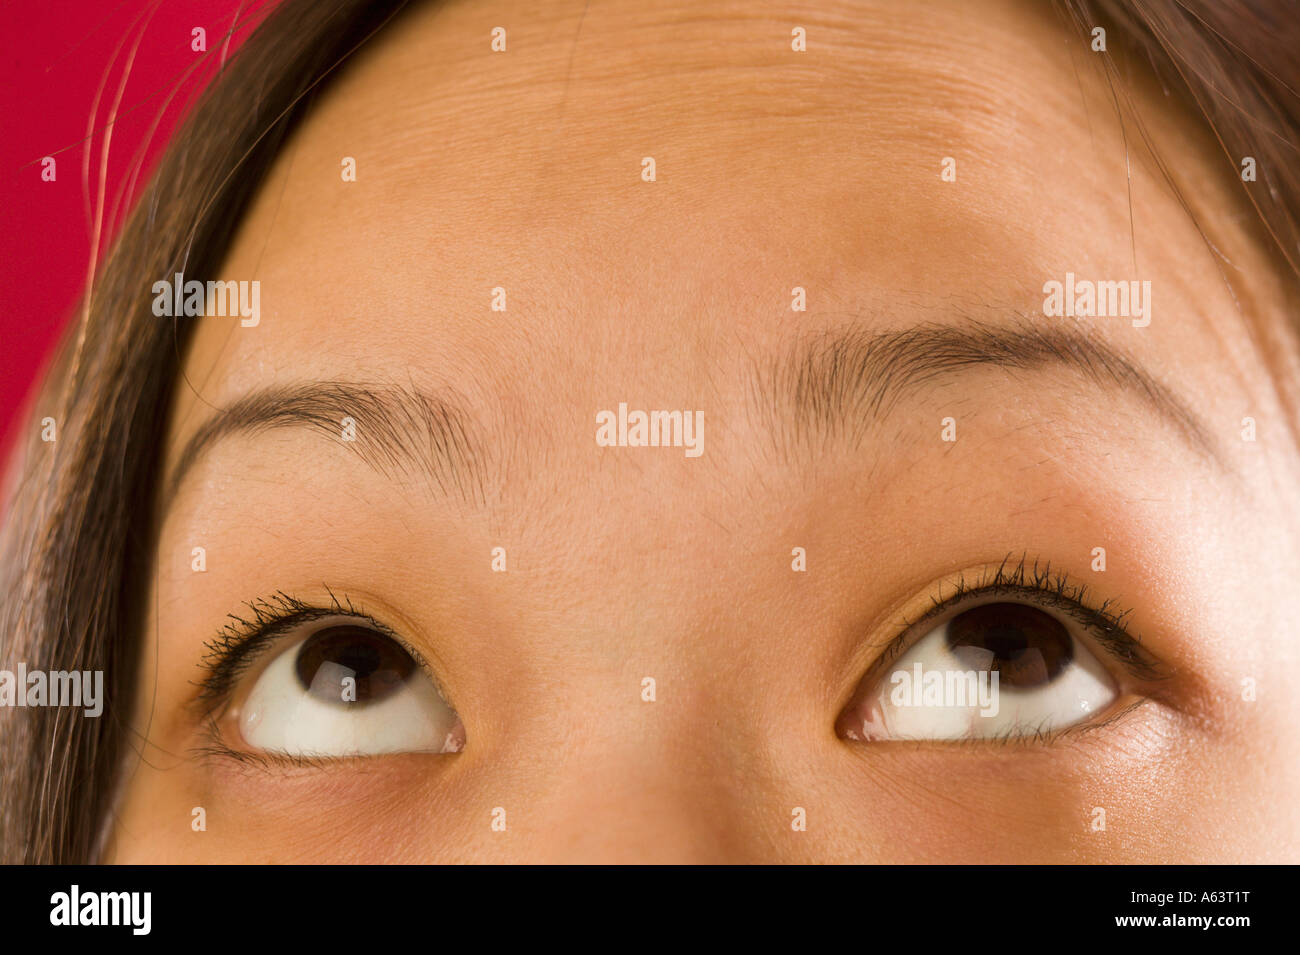 Asian woman's eyes looking up - Stock Image